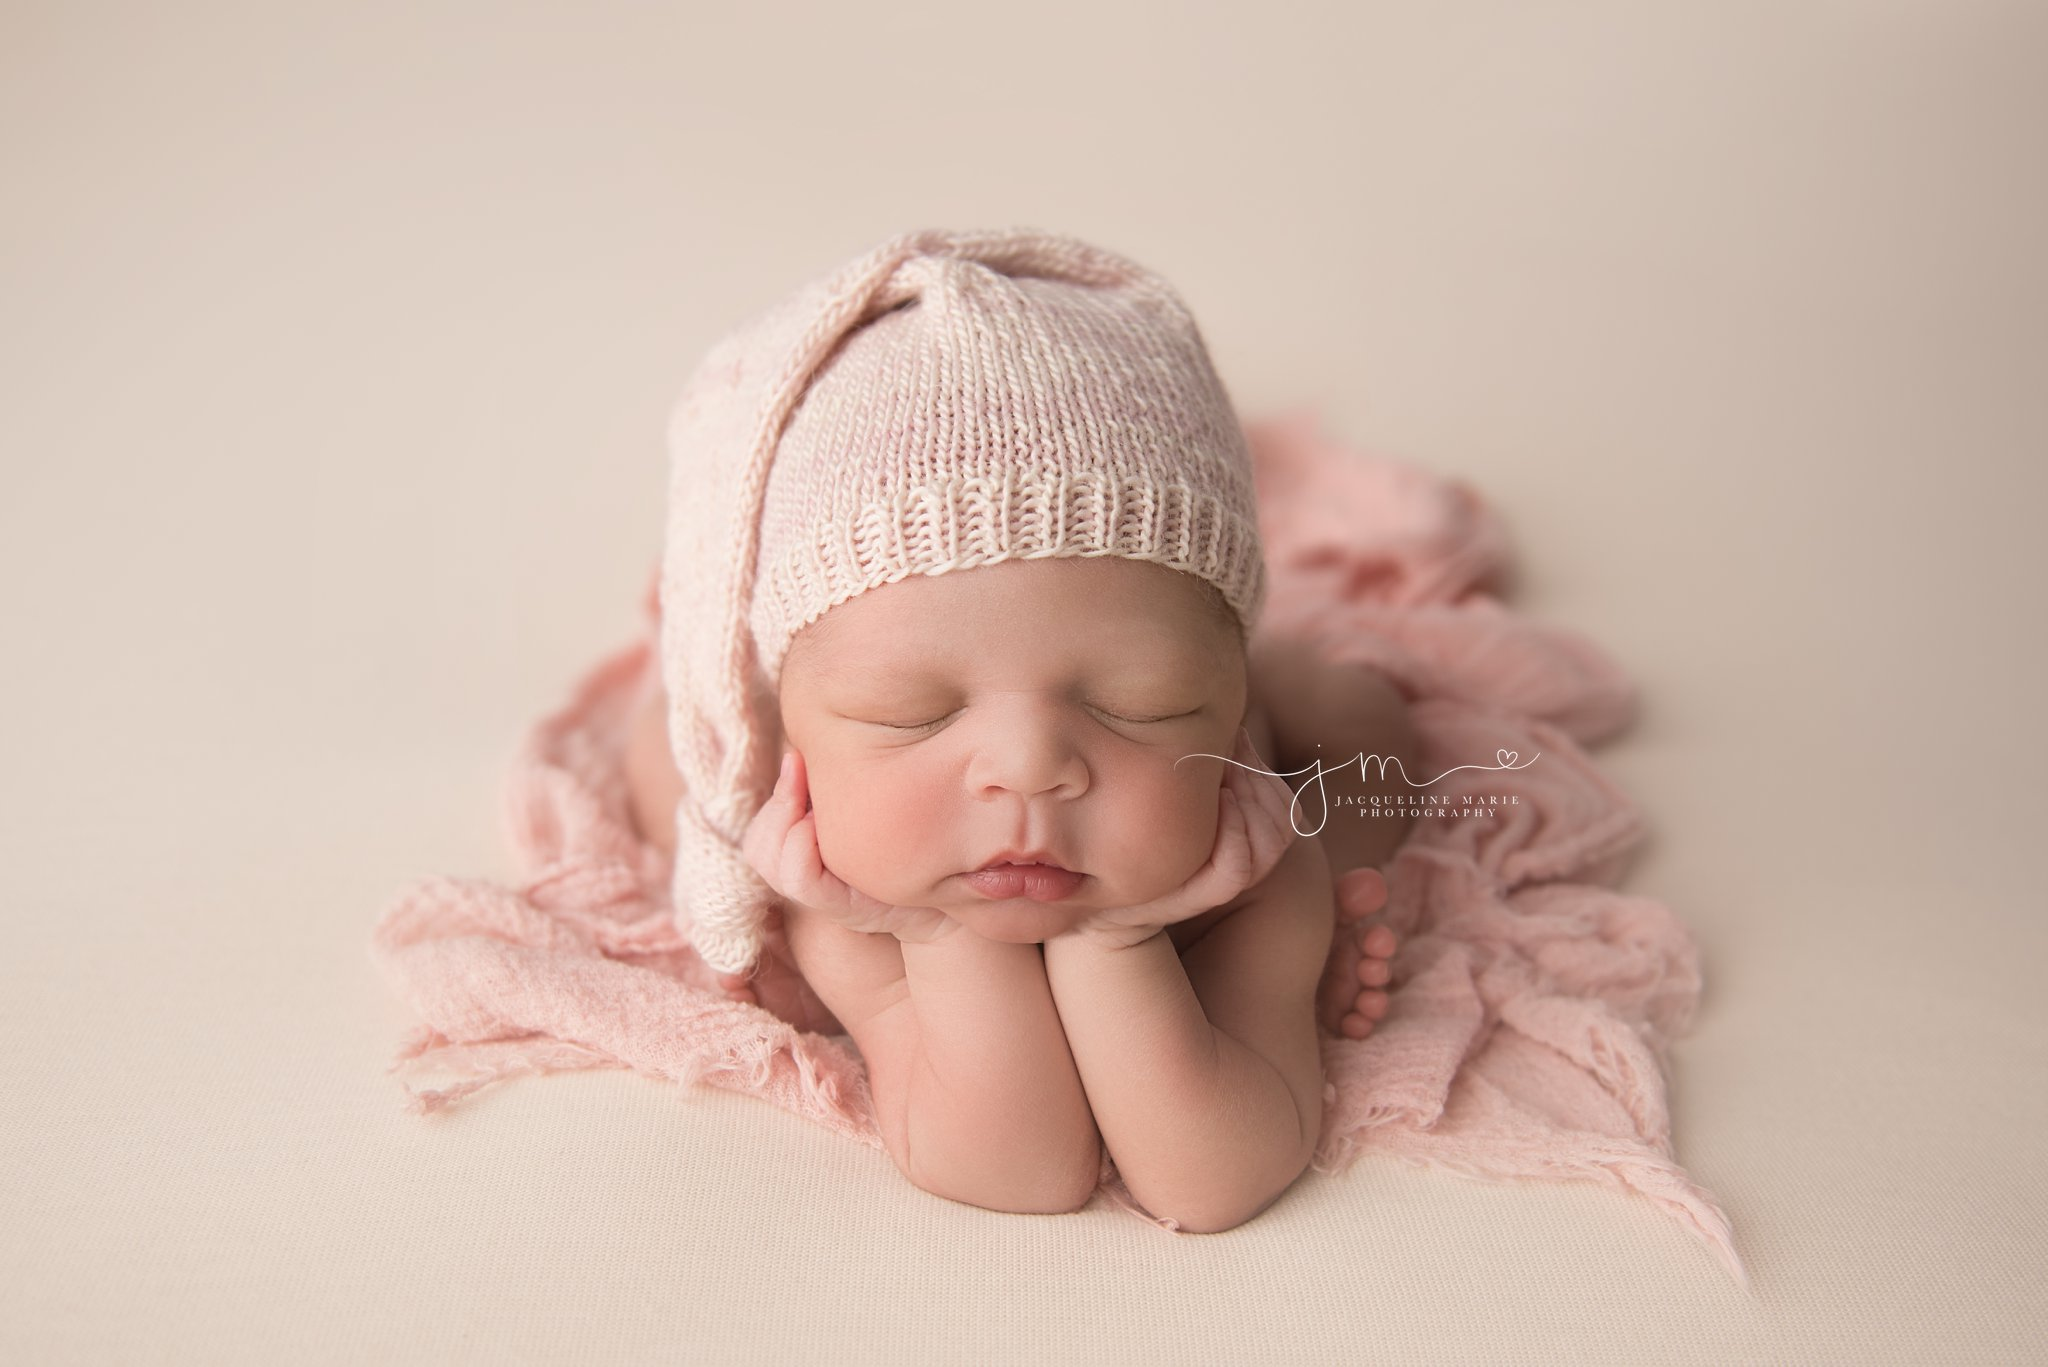 columbus ohio newborn baby girl wears pink sleepy hat for froggy pose during newborn photography session